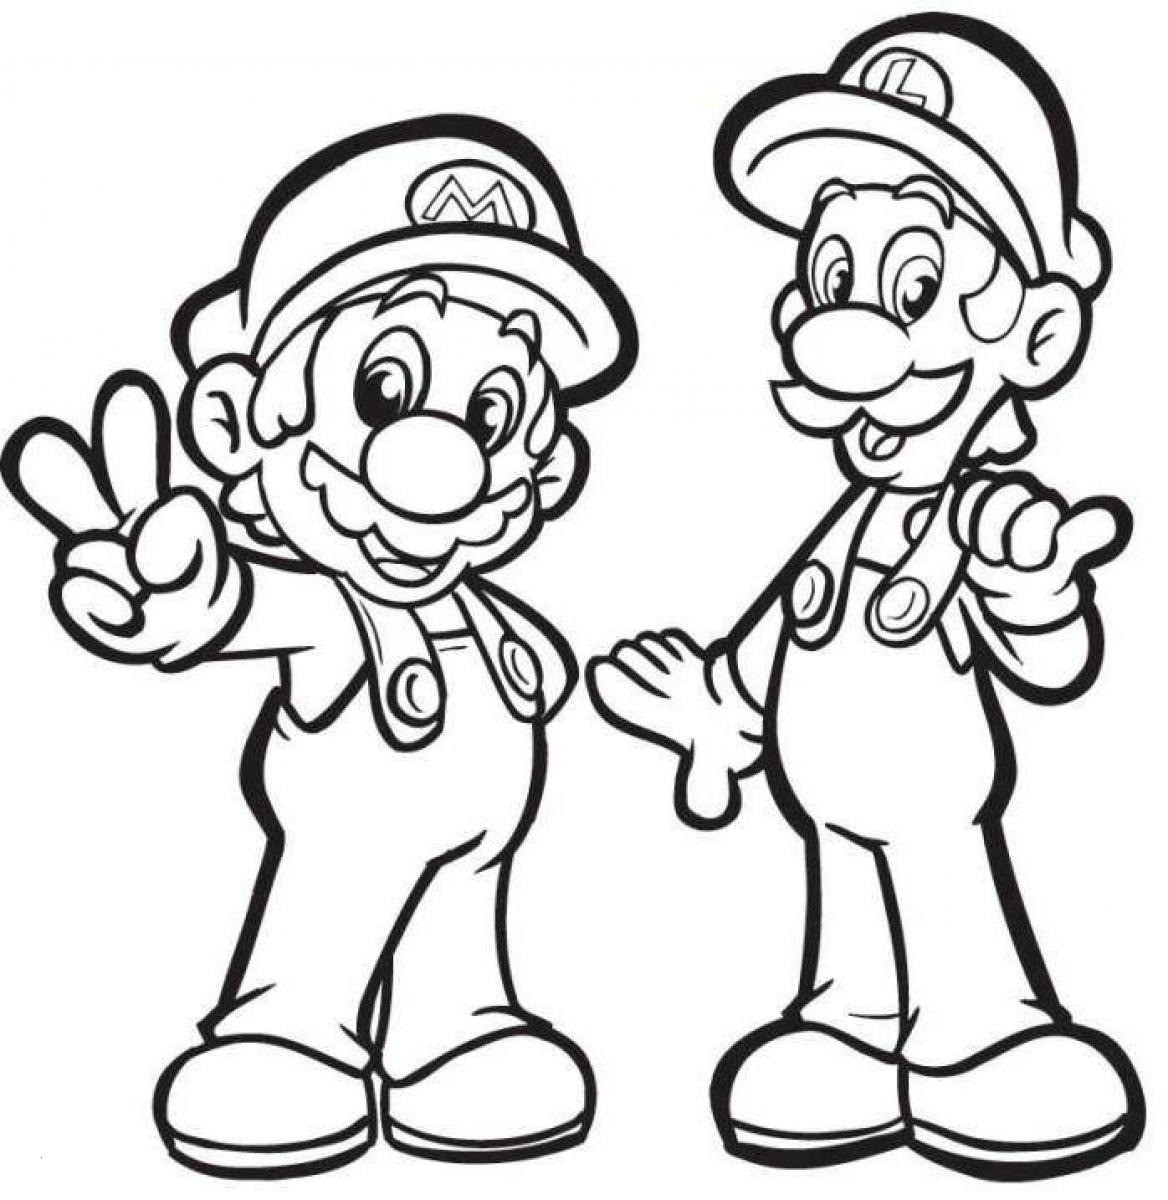 Mario Zum Ausmalen Einzigartig Mario Coloring Pages for Boys Download Ausmalbilder Super Mario Fotos